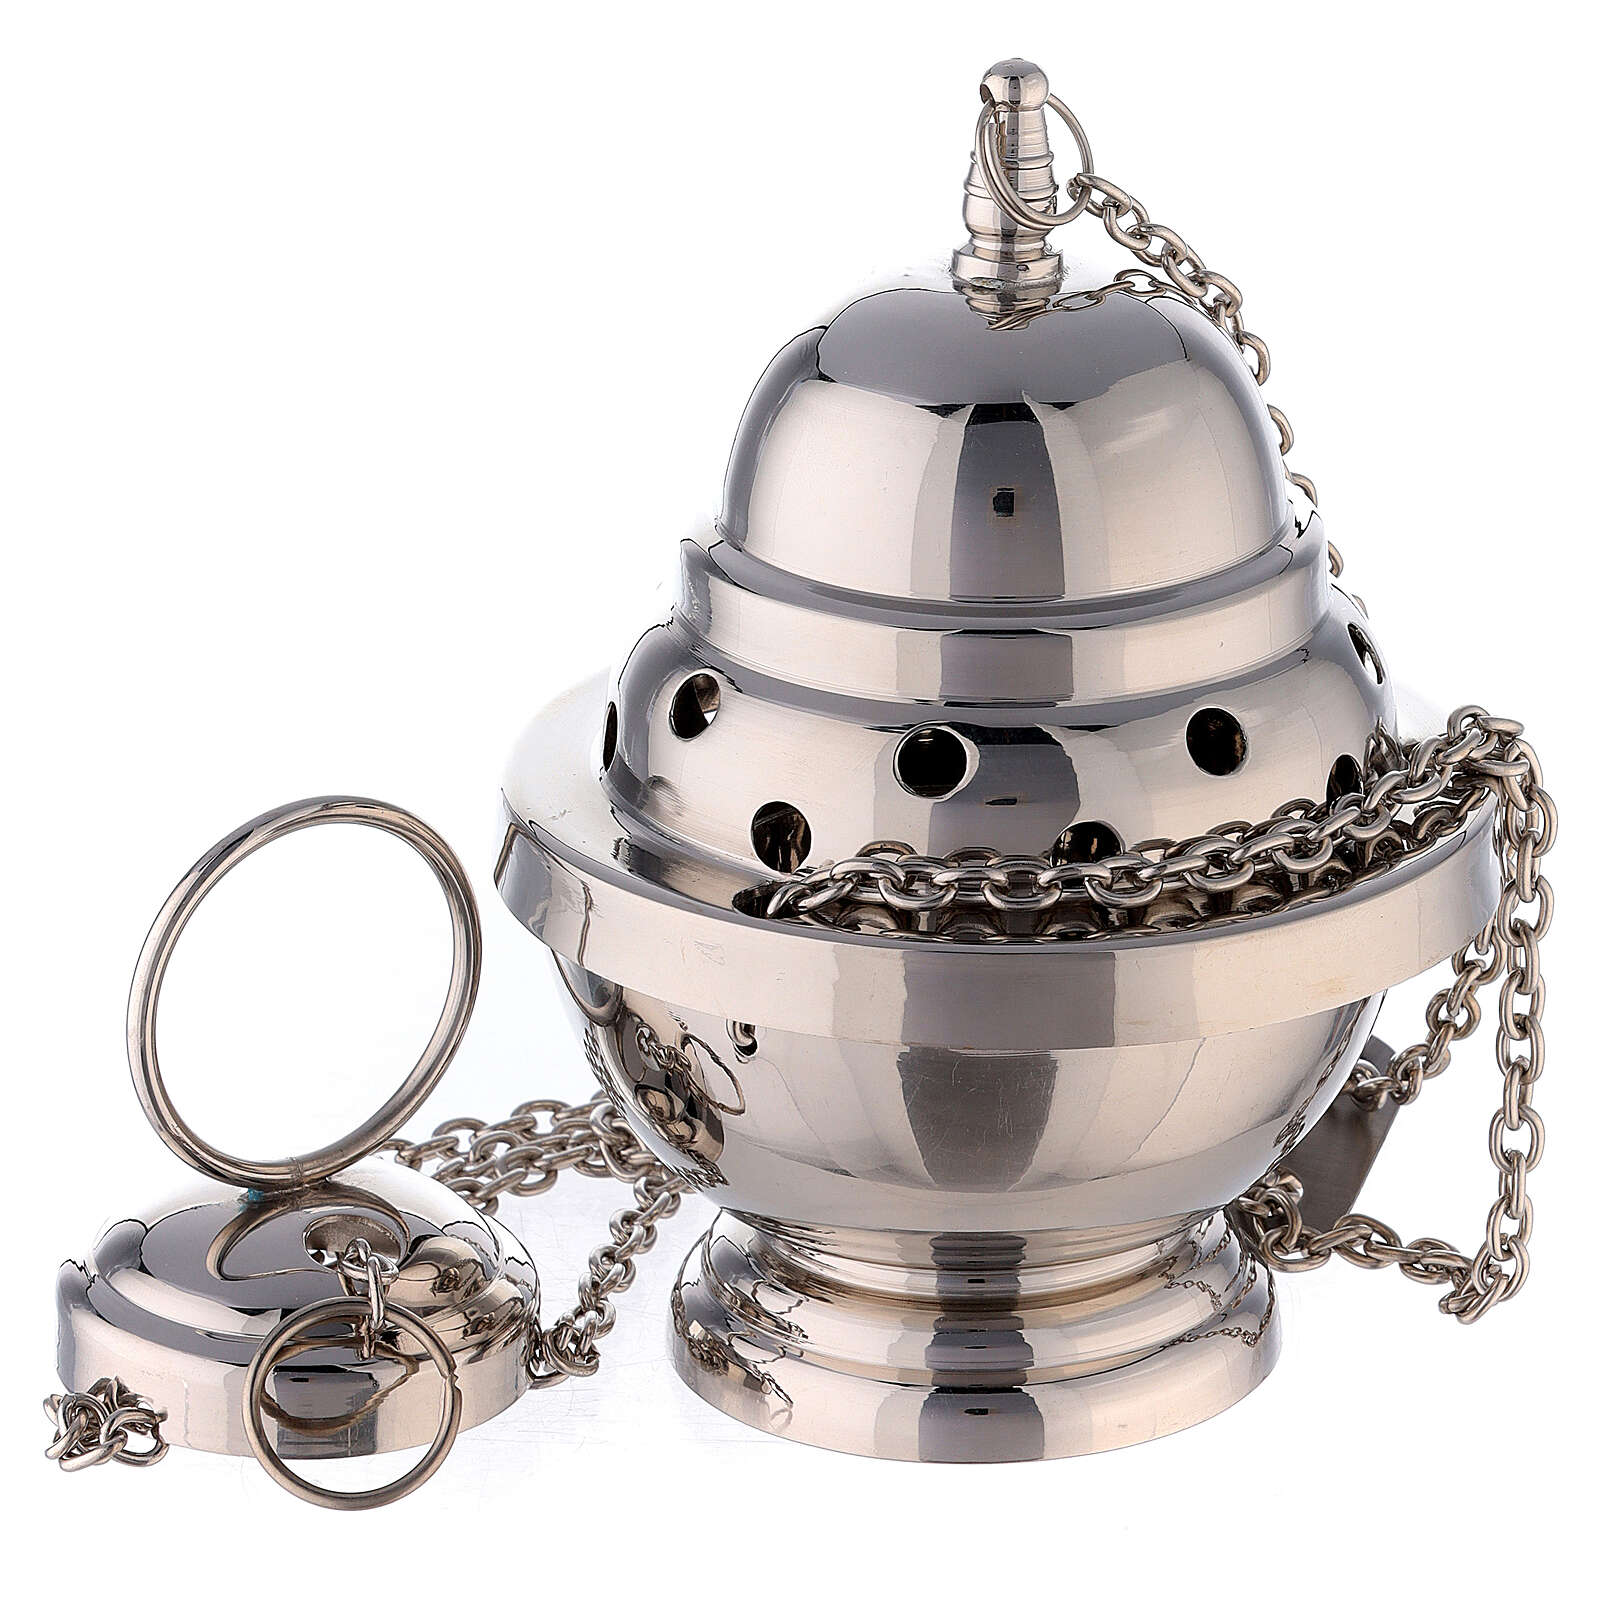 Oval censer with round holes 6 in nickel-plated brass 3